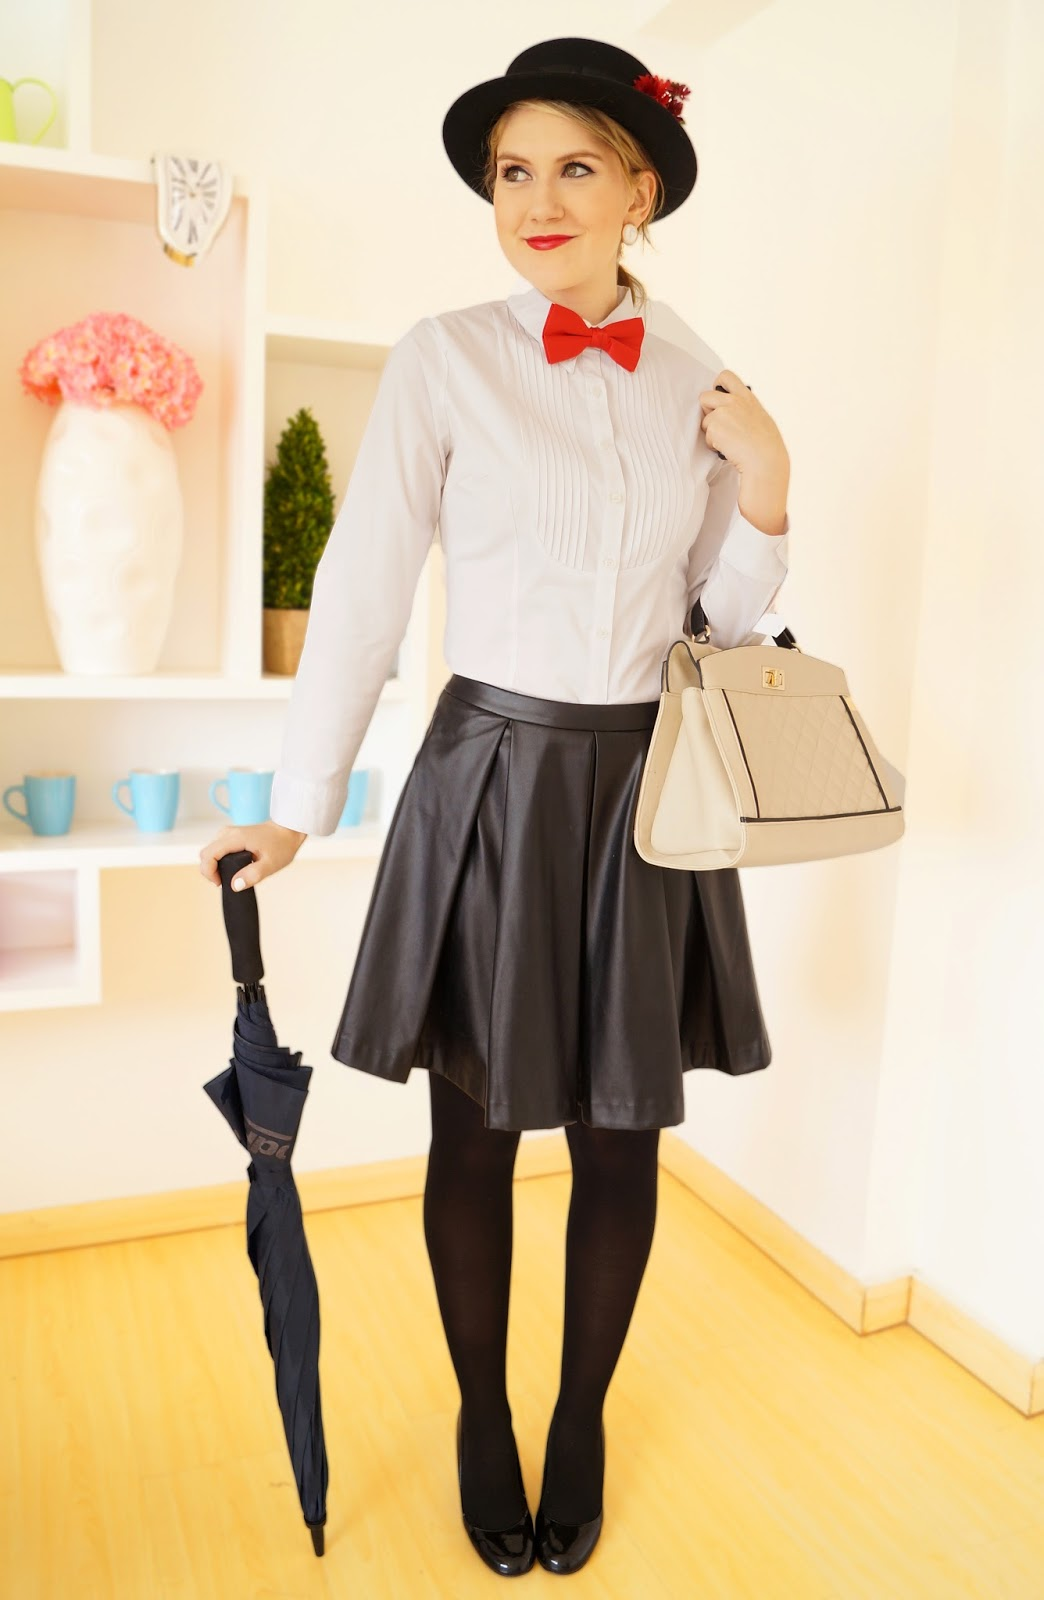 How to Mary Poppins Costume